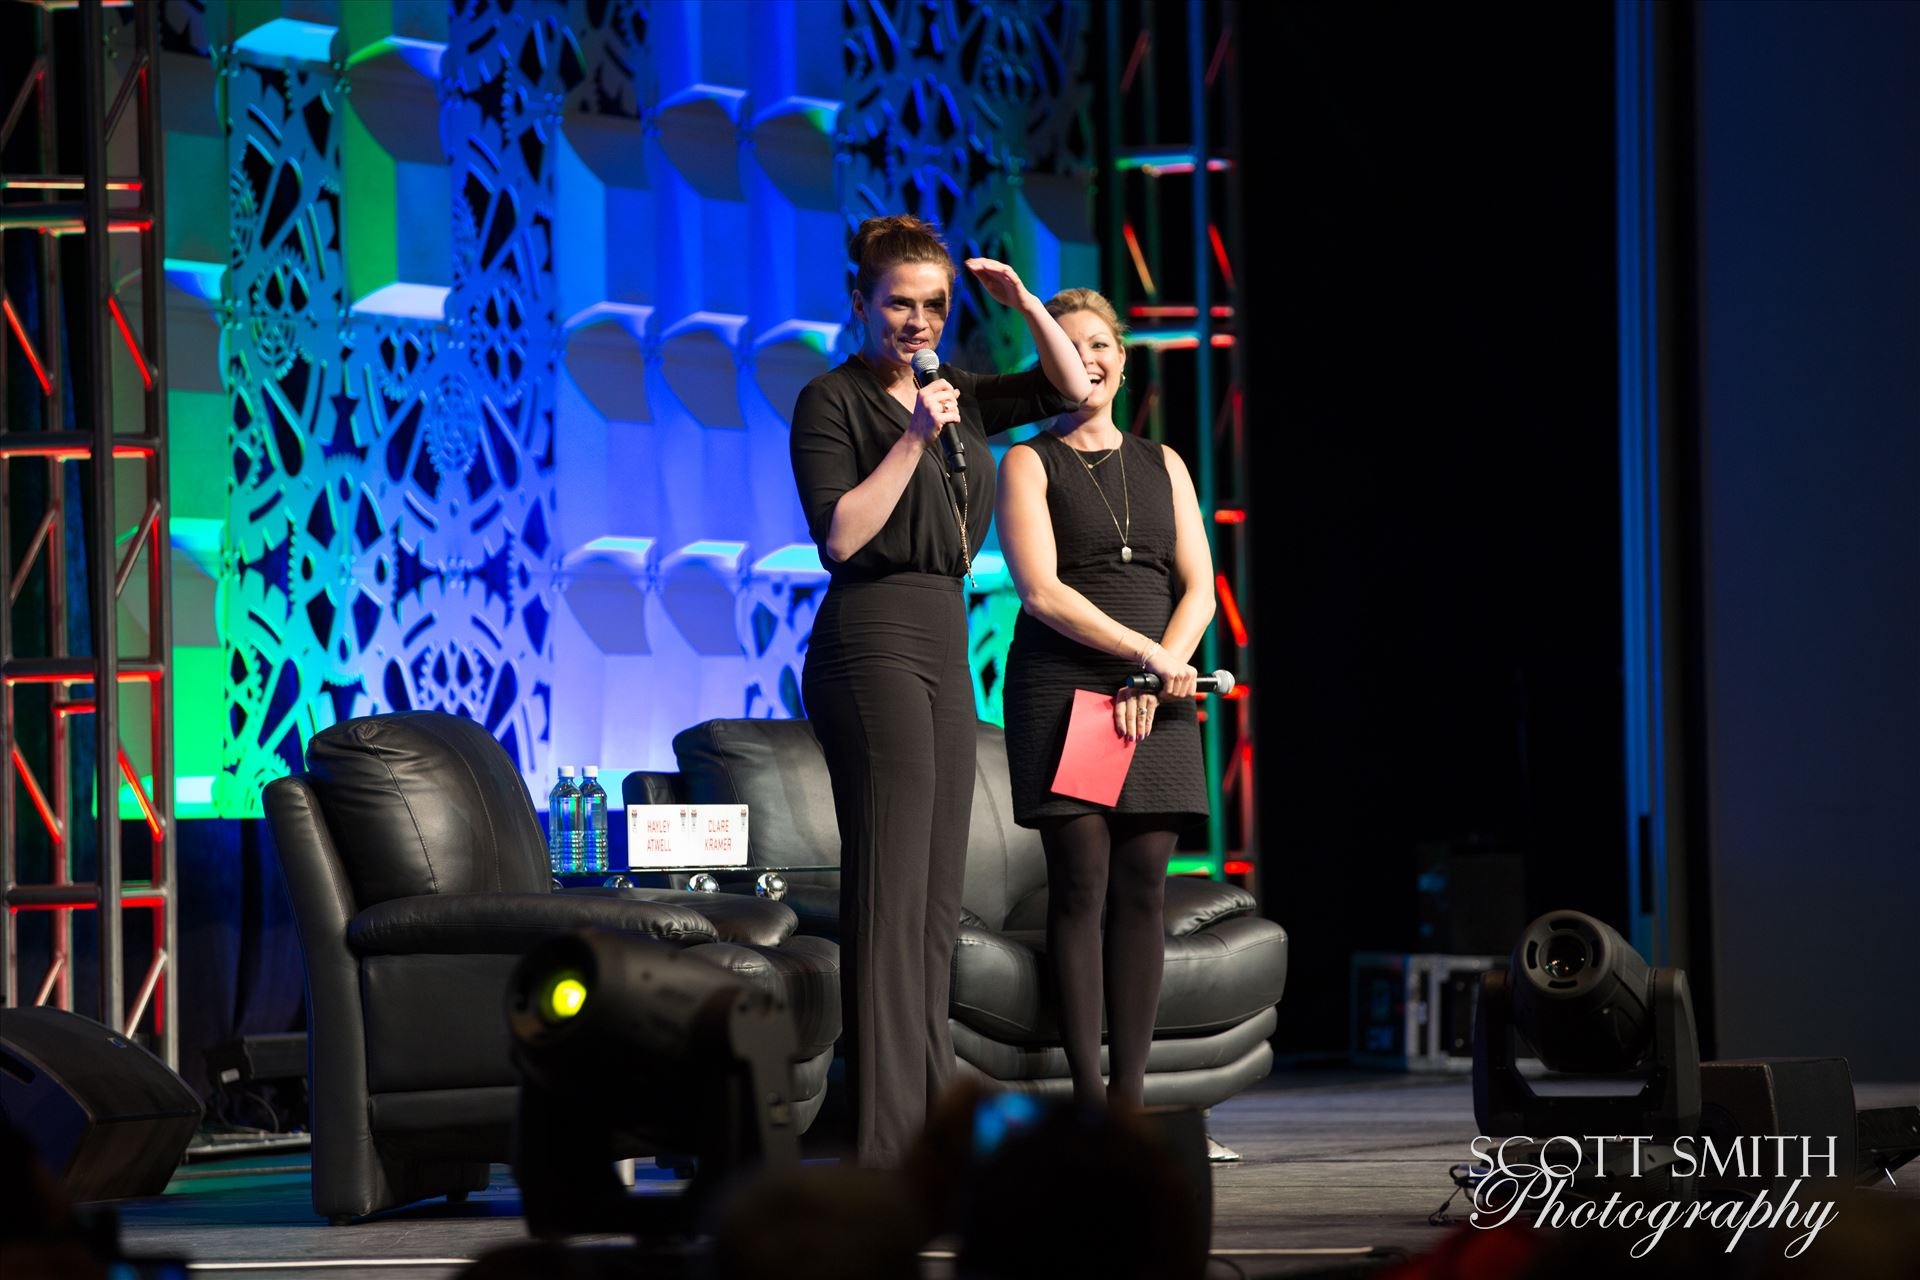 Denver Comic Con 2016 16 - Denver Comic Con 2016 at the Colorado Convention Center. Clare Kramer and Haley Atwell. by Scott Smith Photos